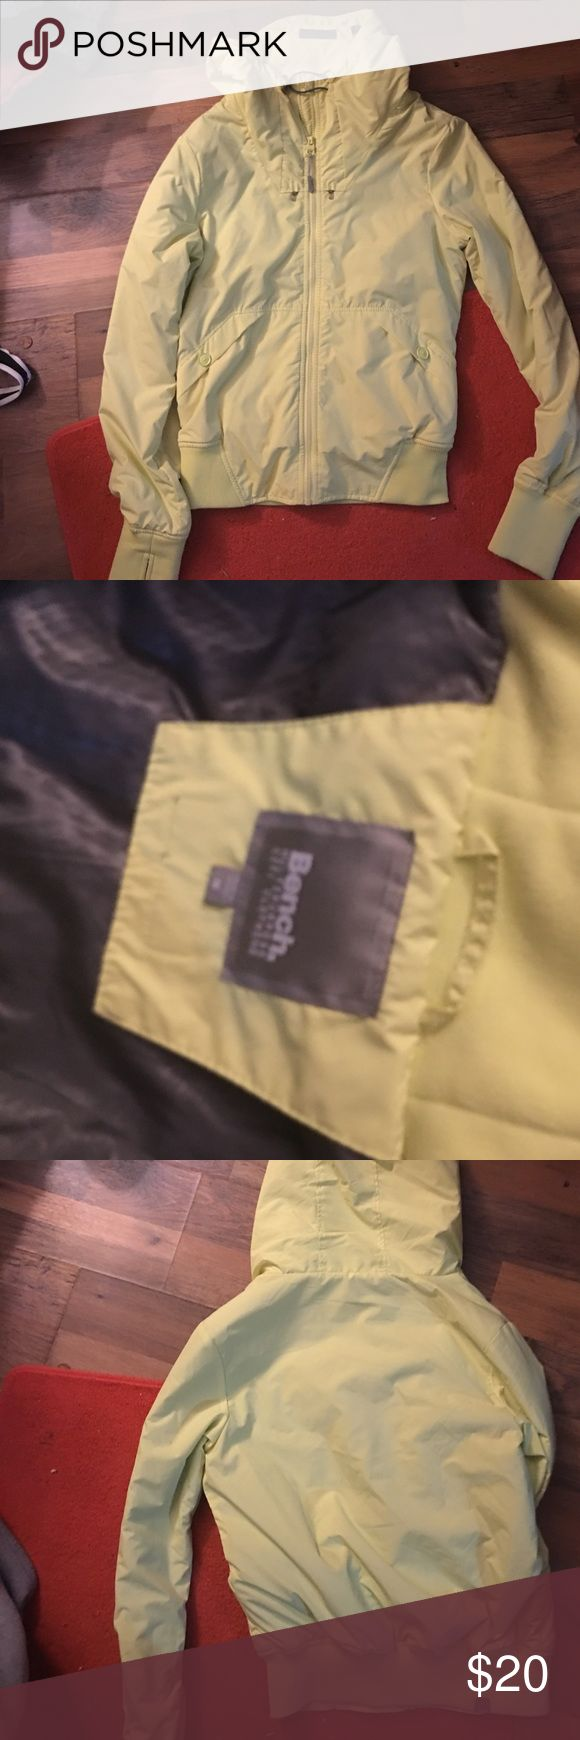 Bench jacket It is a yellow jacket and size medium. Never been worn Jackets & Coats